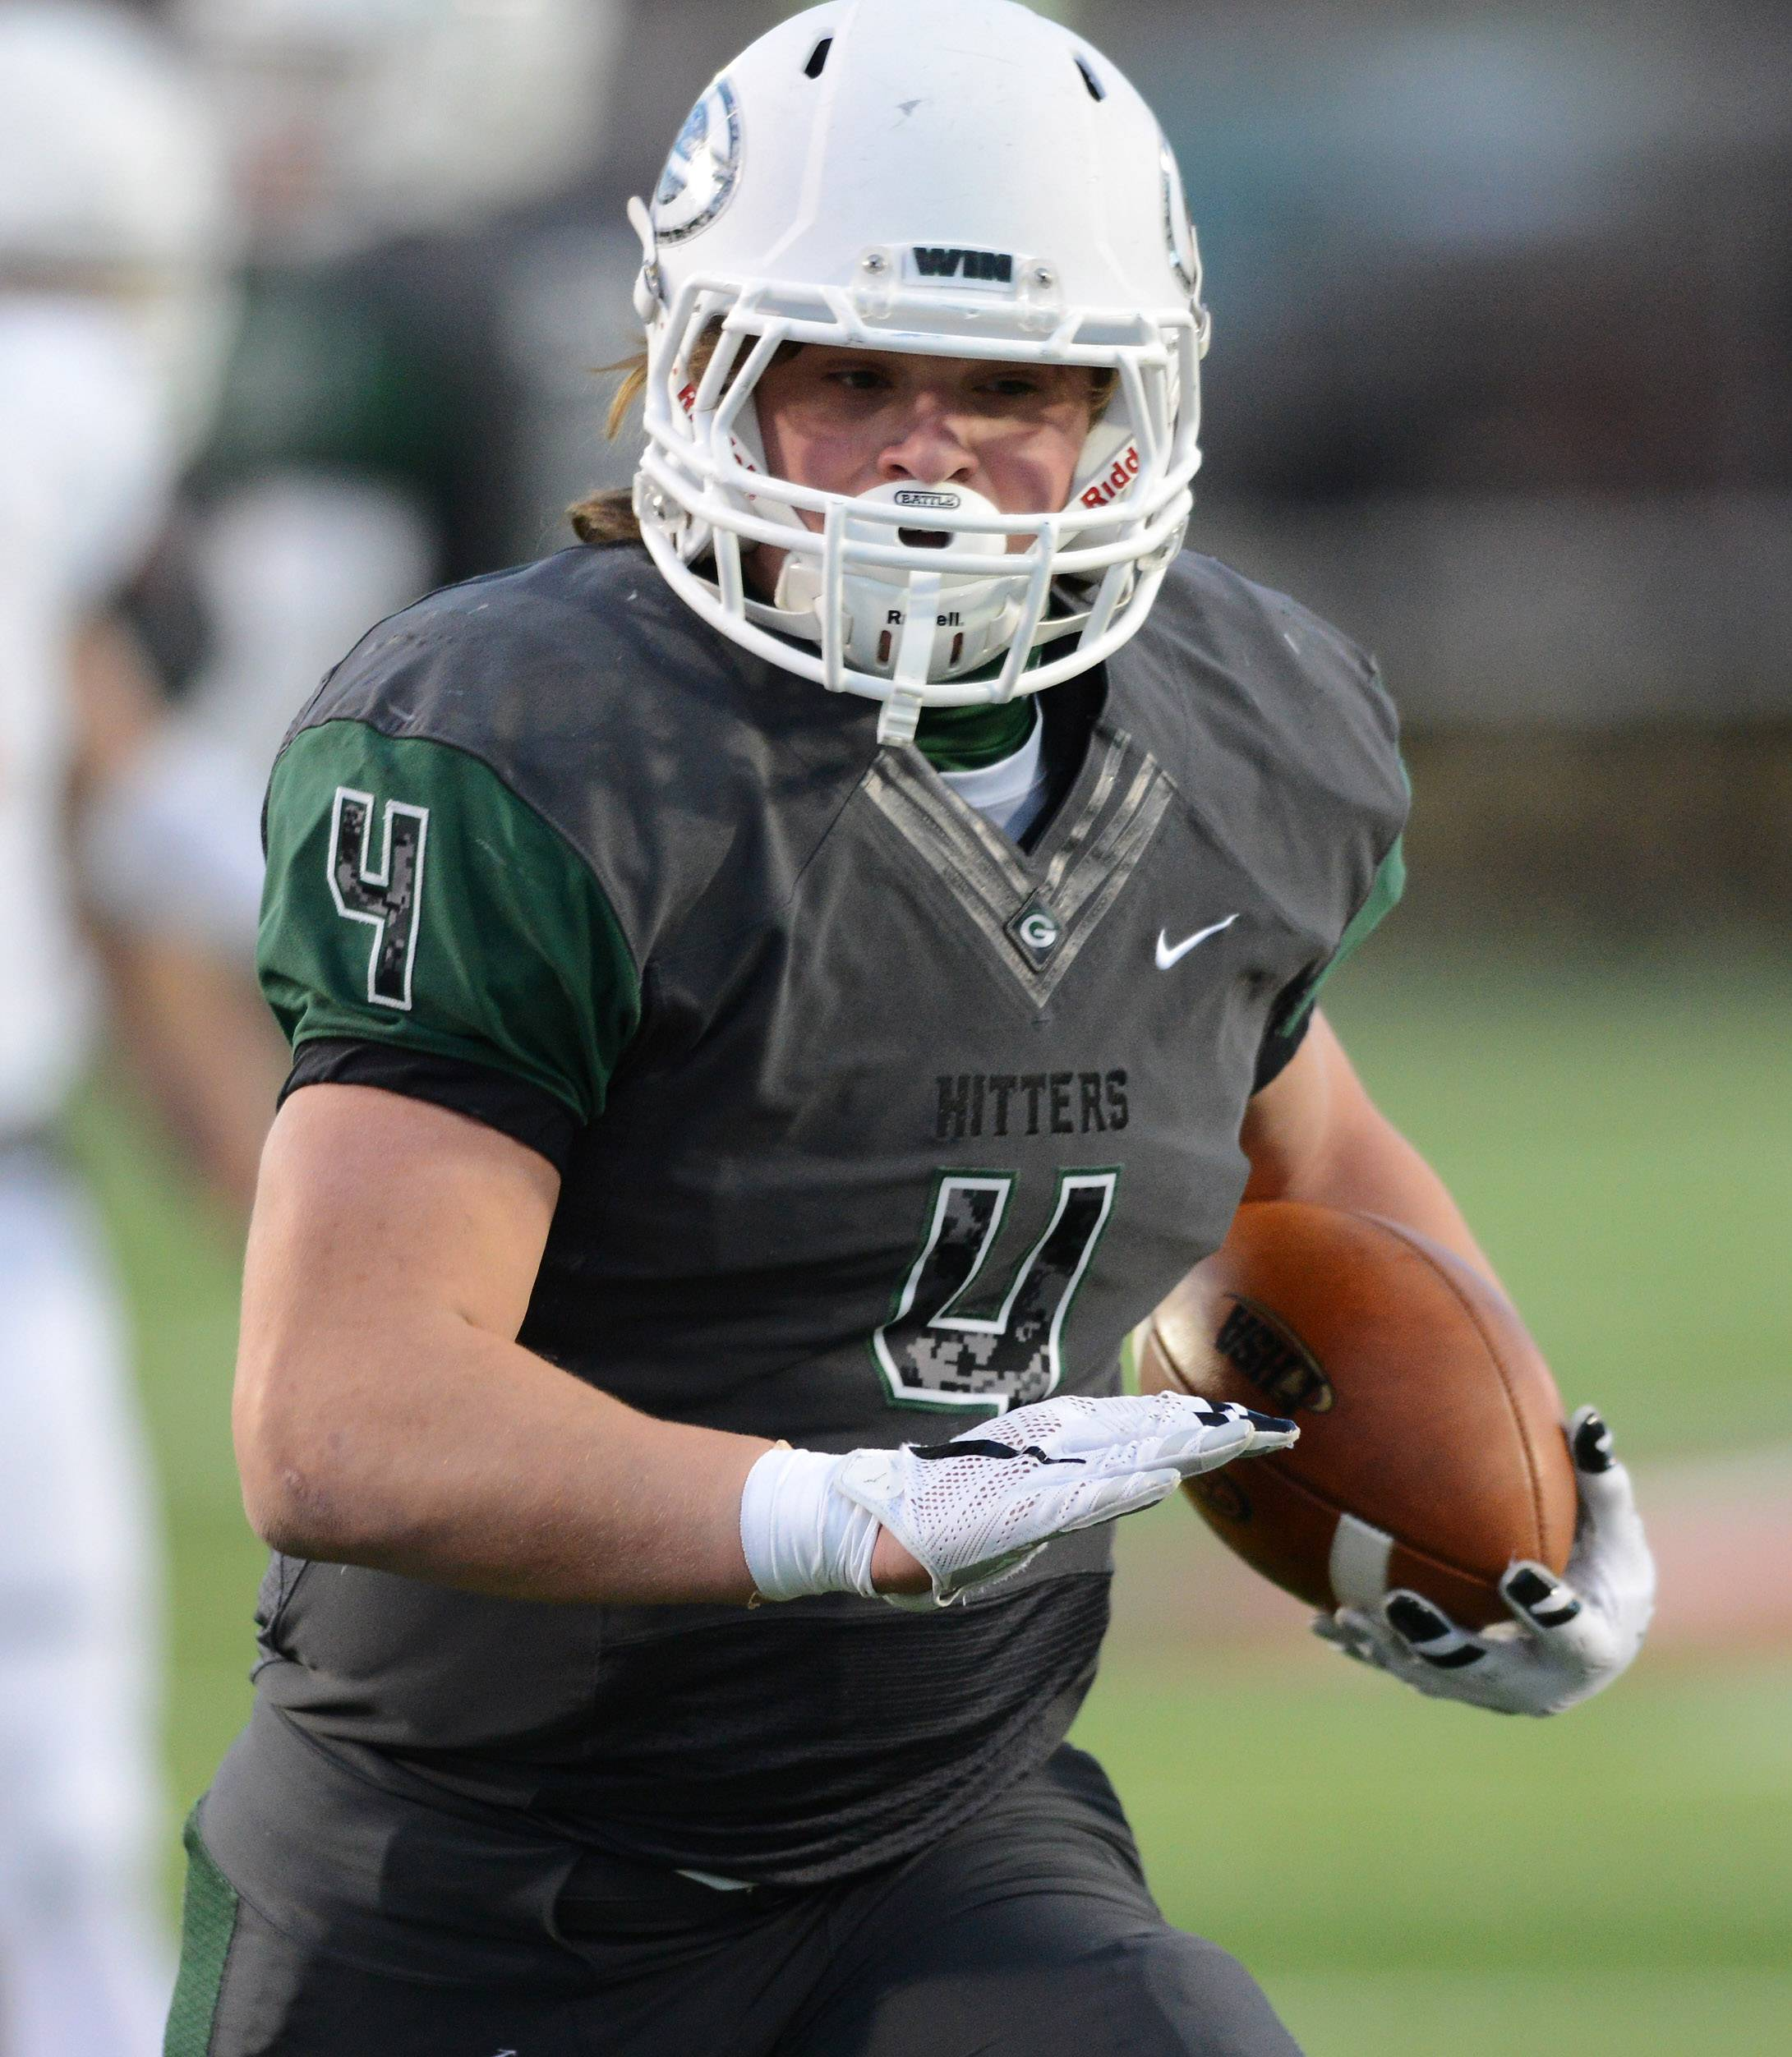 Glenbard West goes undefeated start to finish